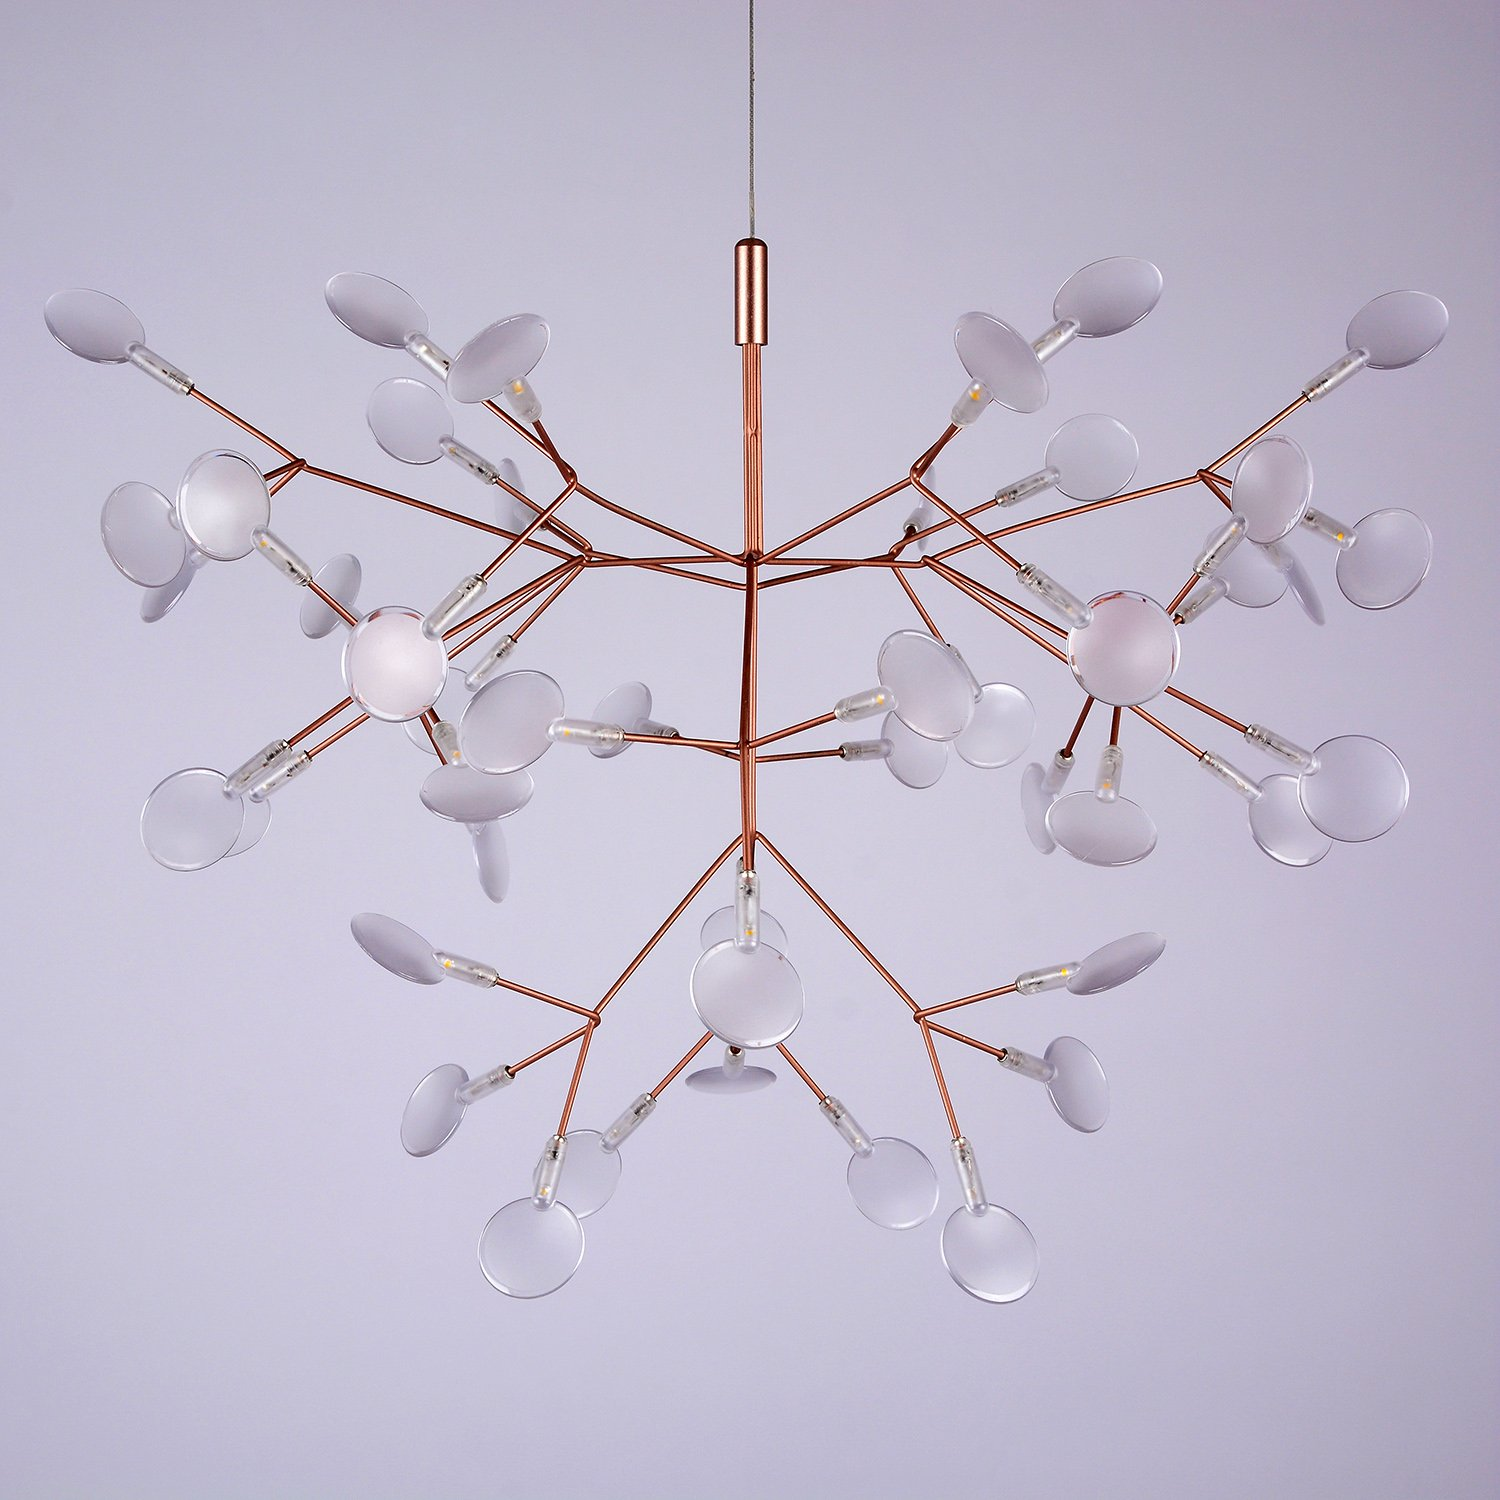 CEENWE Kamille Shiny Branches Chandelier I Postmodern Firefly Cafe